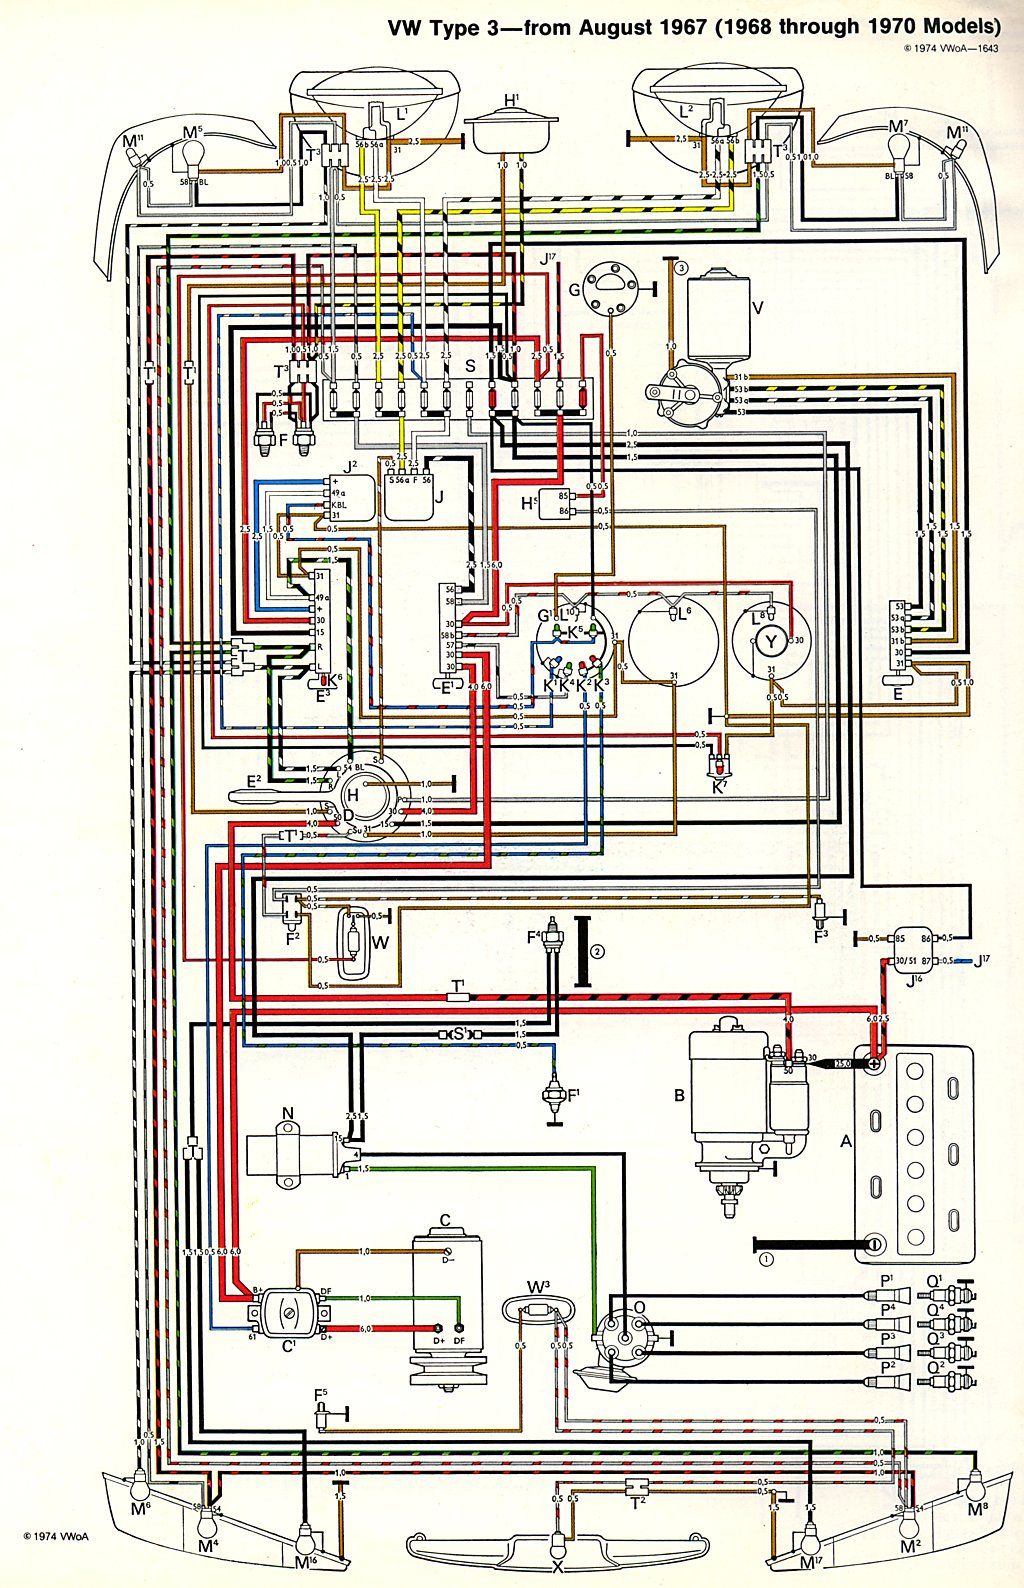 Vw Type 3 Wiring Diagram Will Be A Thing 1974 Chevy Chevelle Thesamba Com Diagrams Rh Fuel Injection